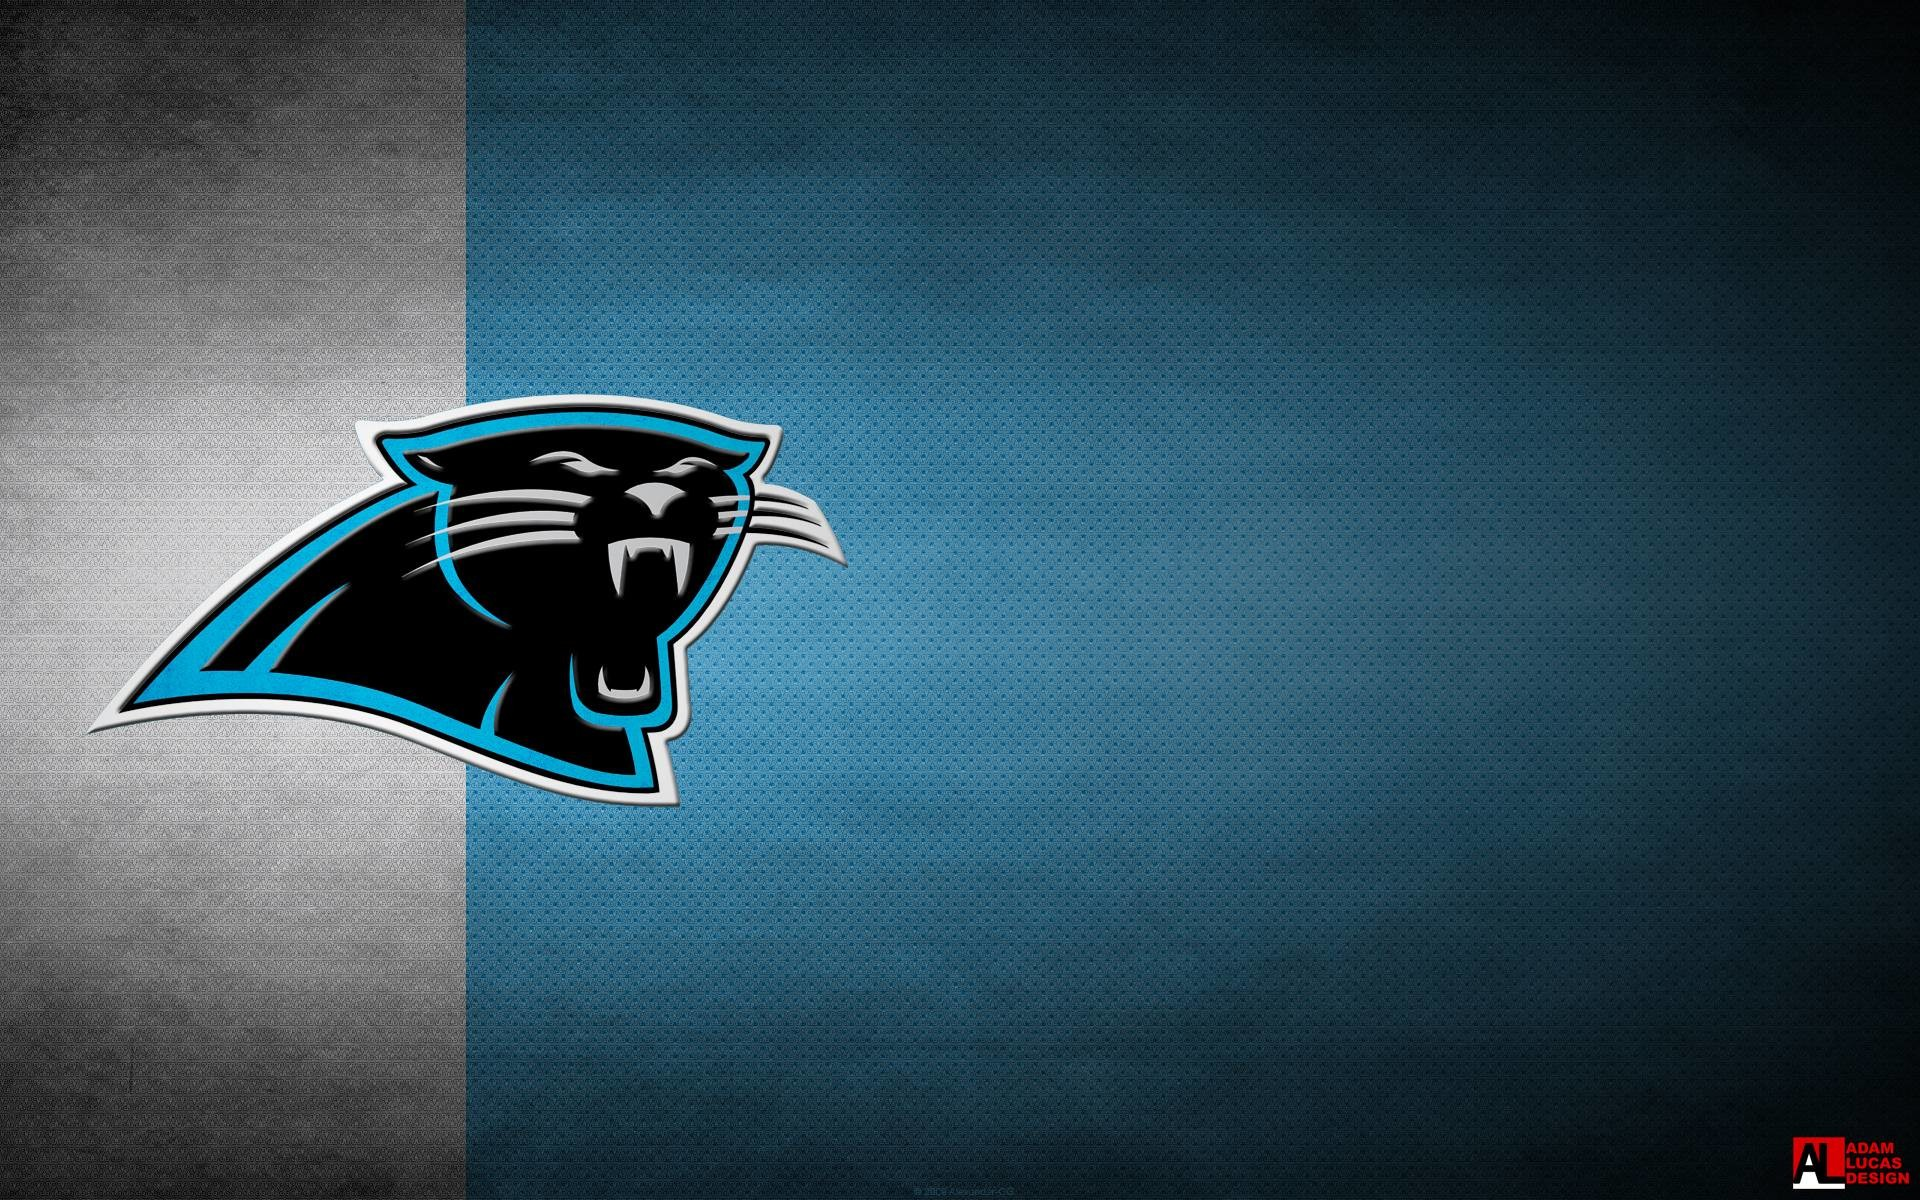 1920x1200 HD Wallpaper Carolina Panthers for Desktop Background